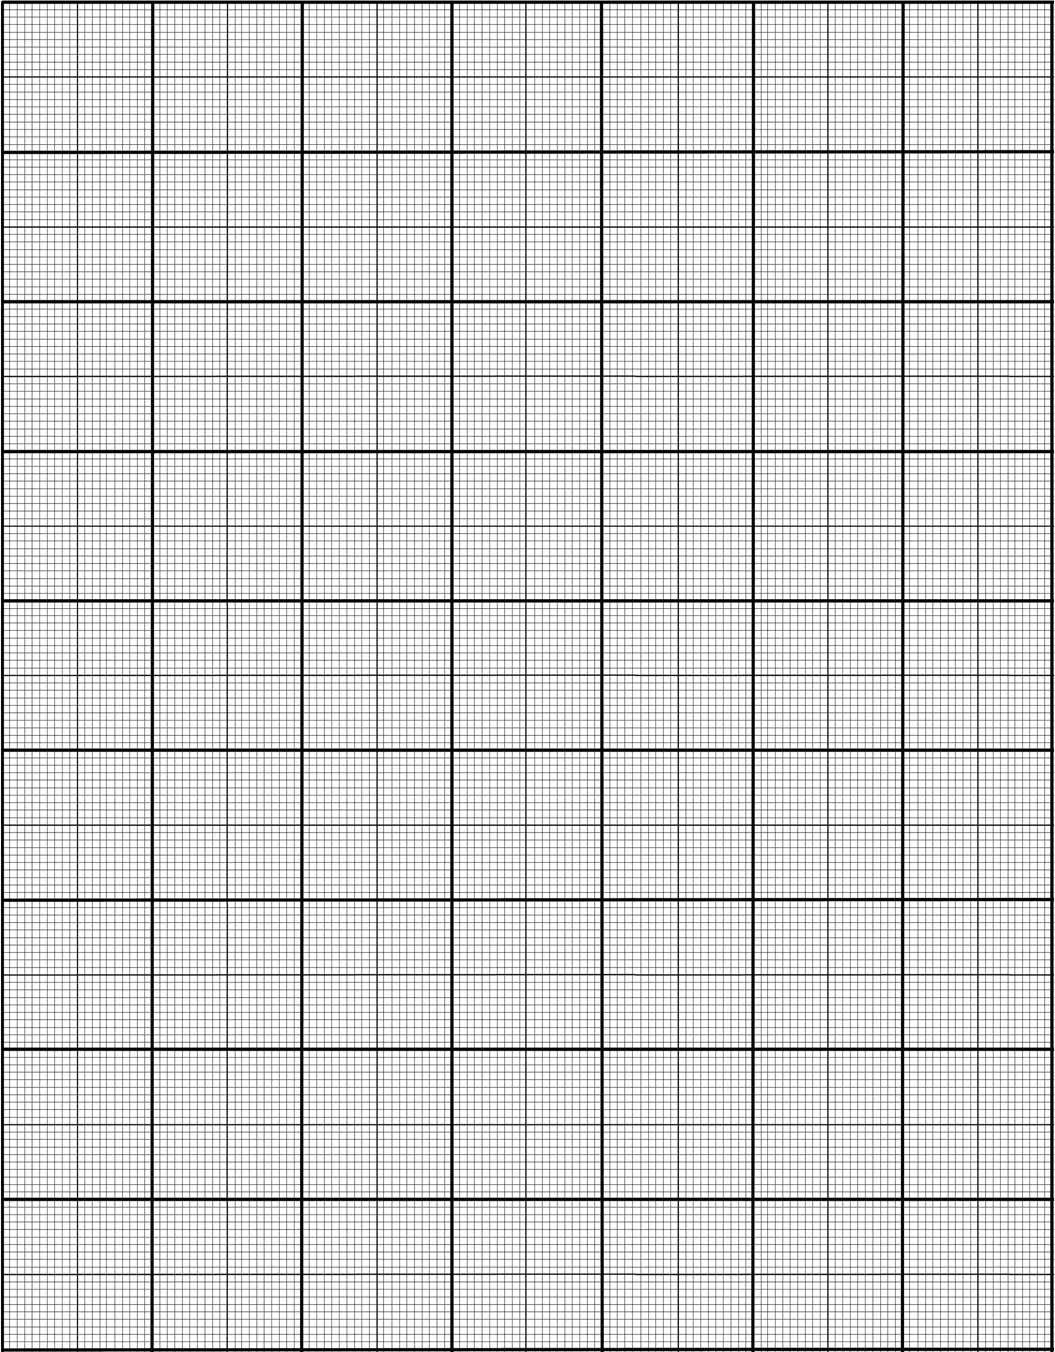 10 square graph paper - gagnatashort.co